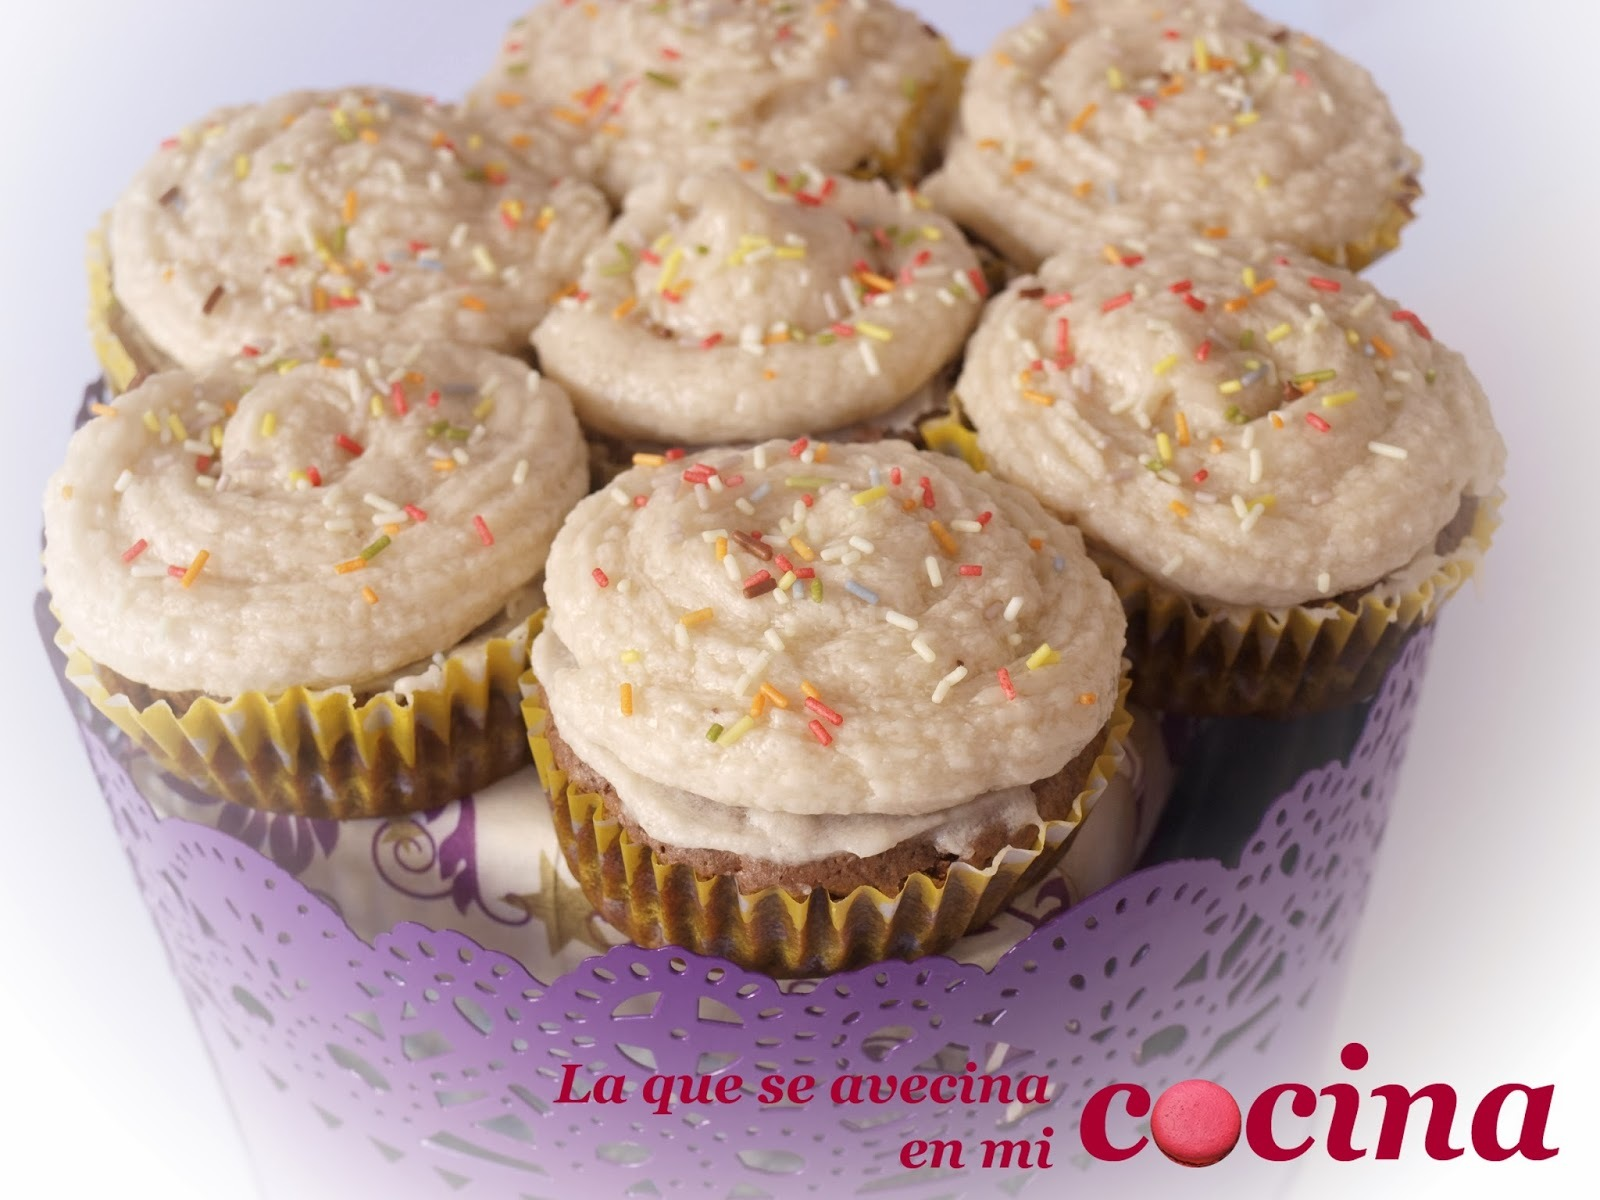 Cupcakes de chocolate con nueces y buttercream de plátano.